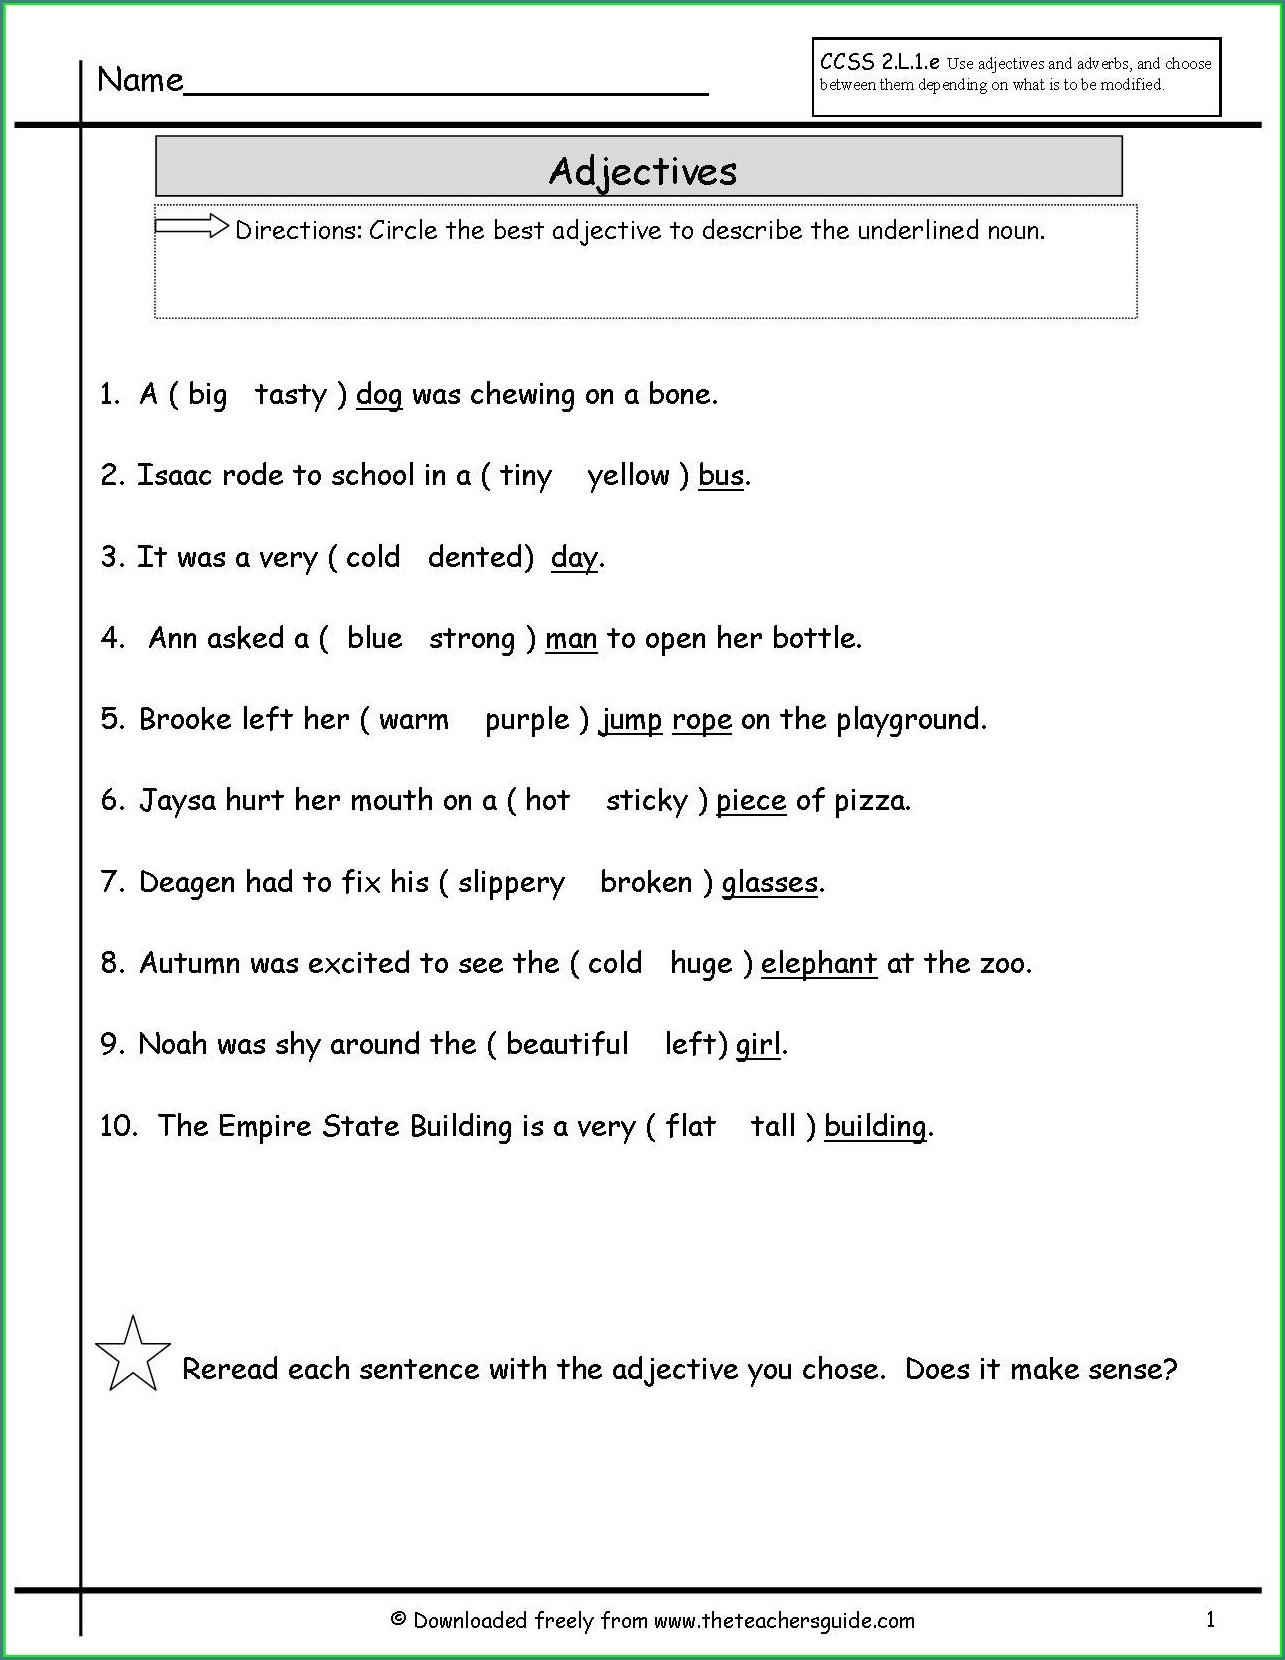 Subject Verb Agreement Exercises With Answers For Class 8